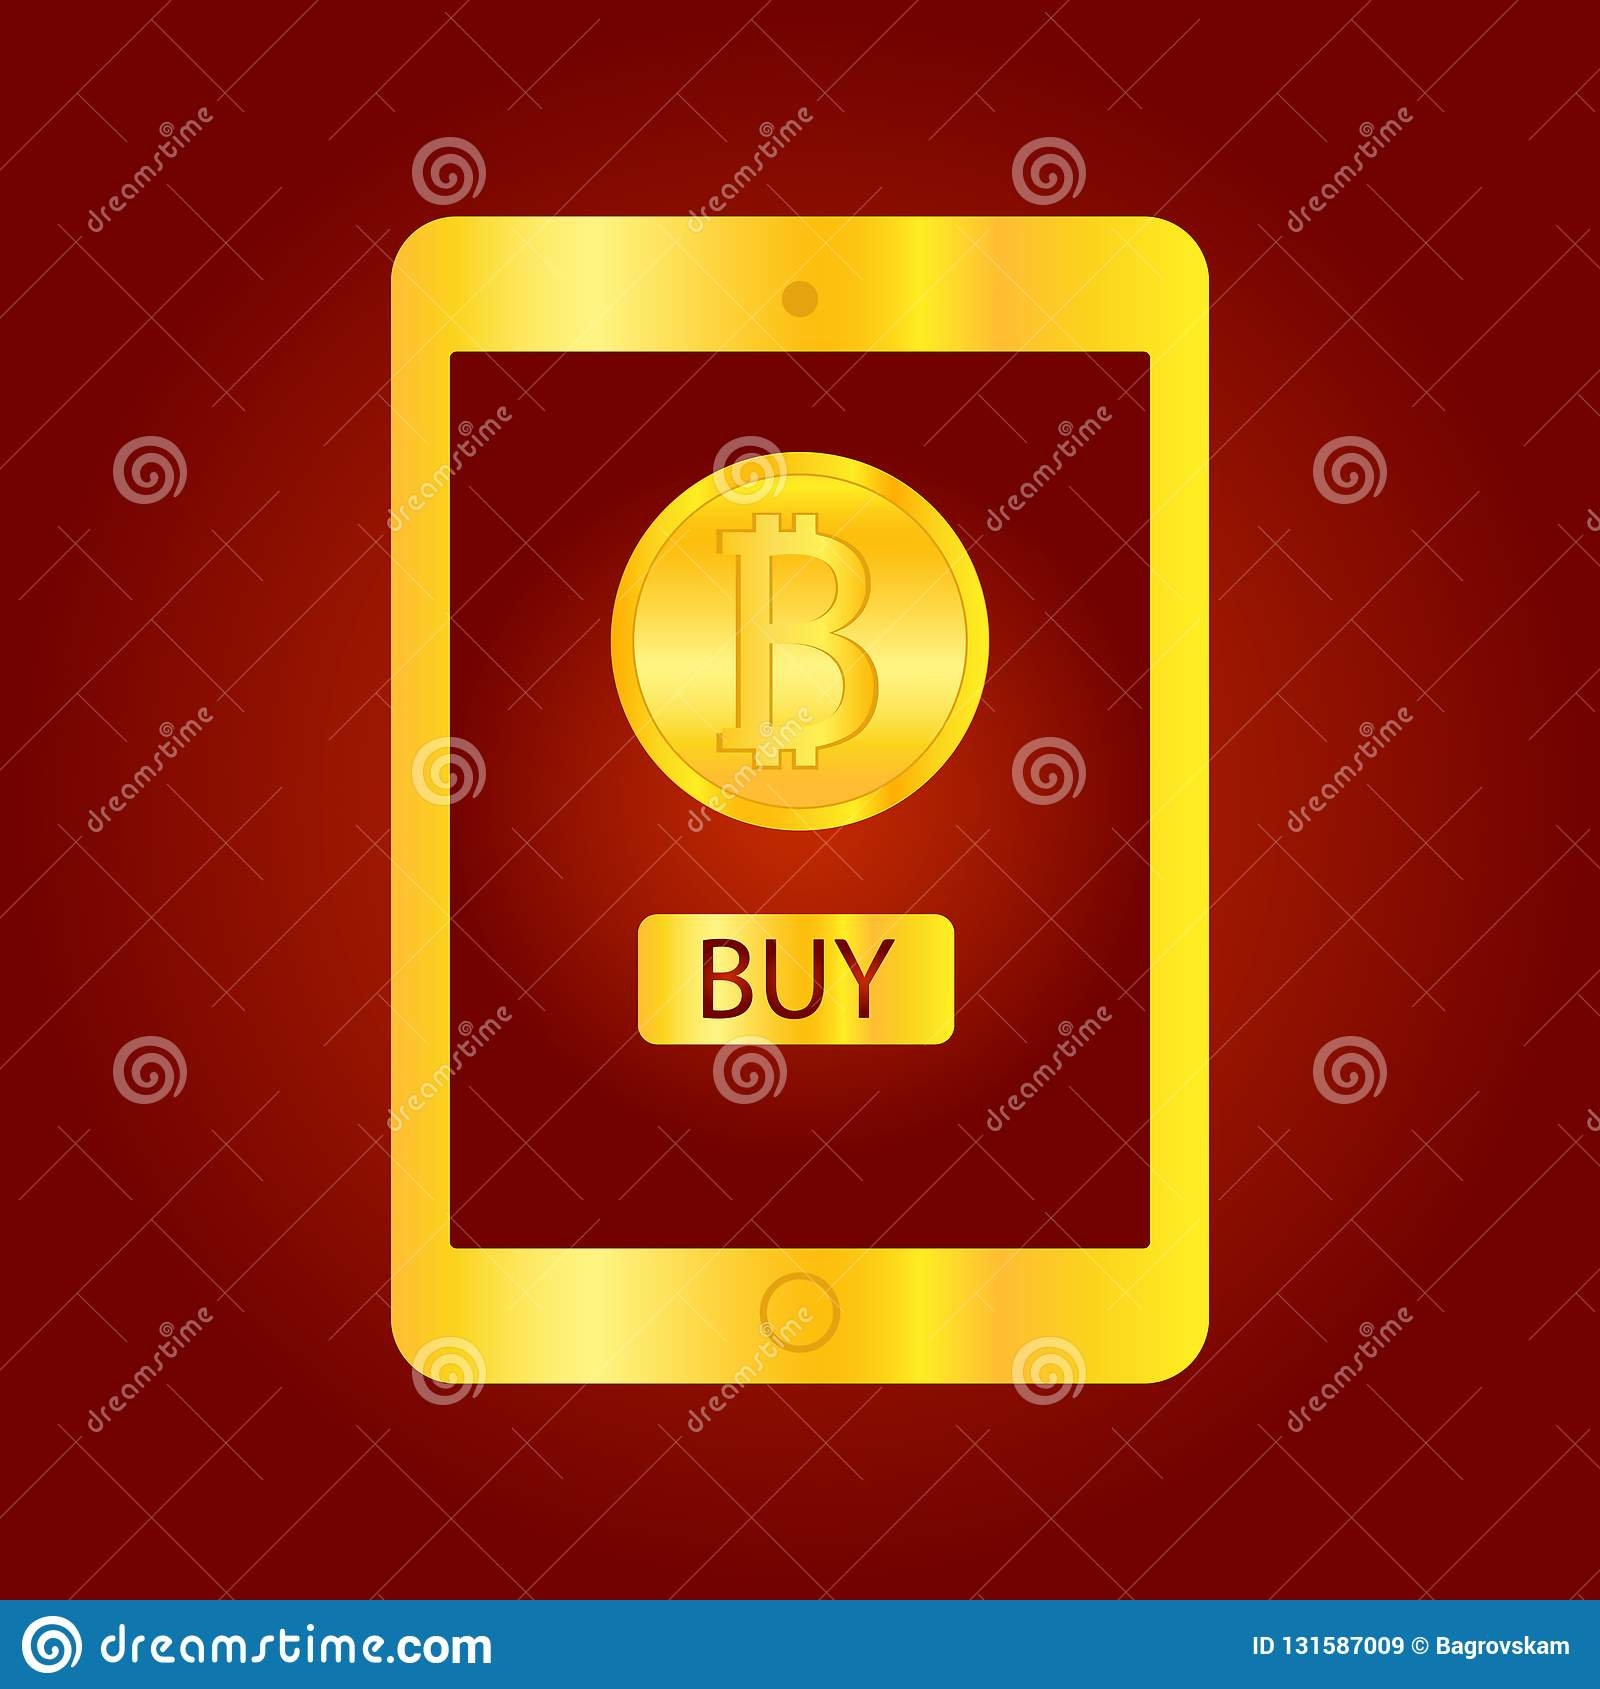 mobile marketing and advertising for cryptocurrency